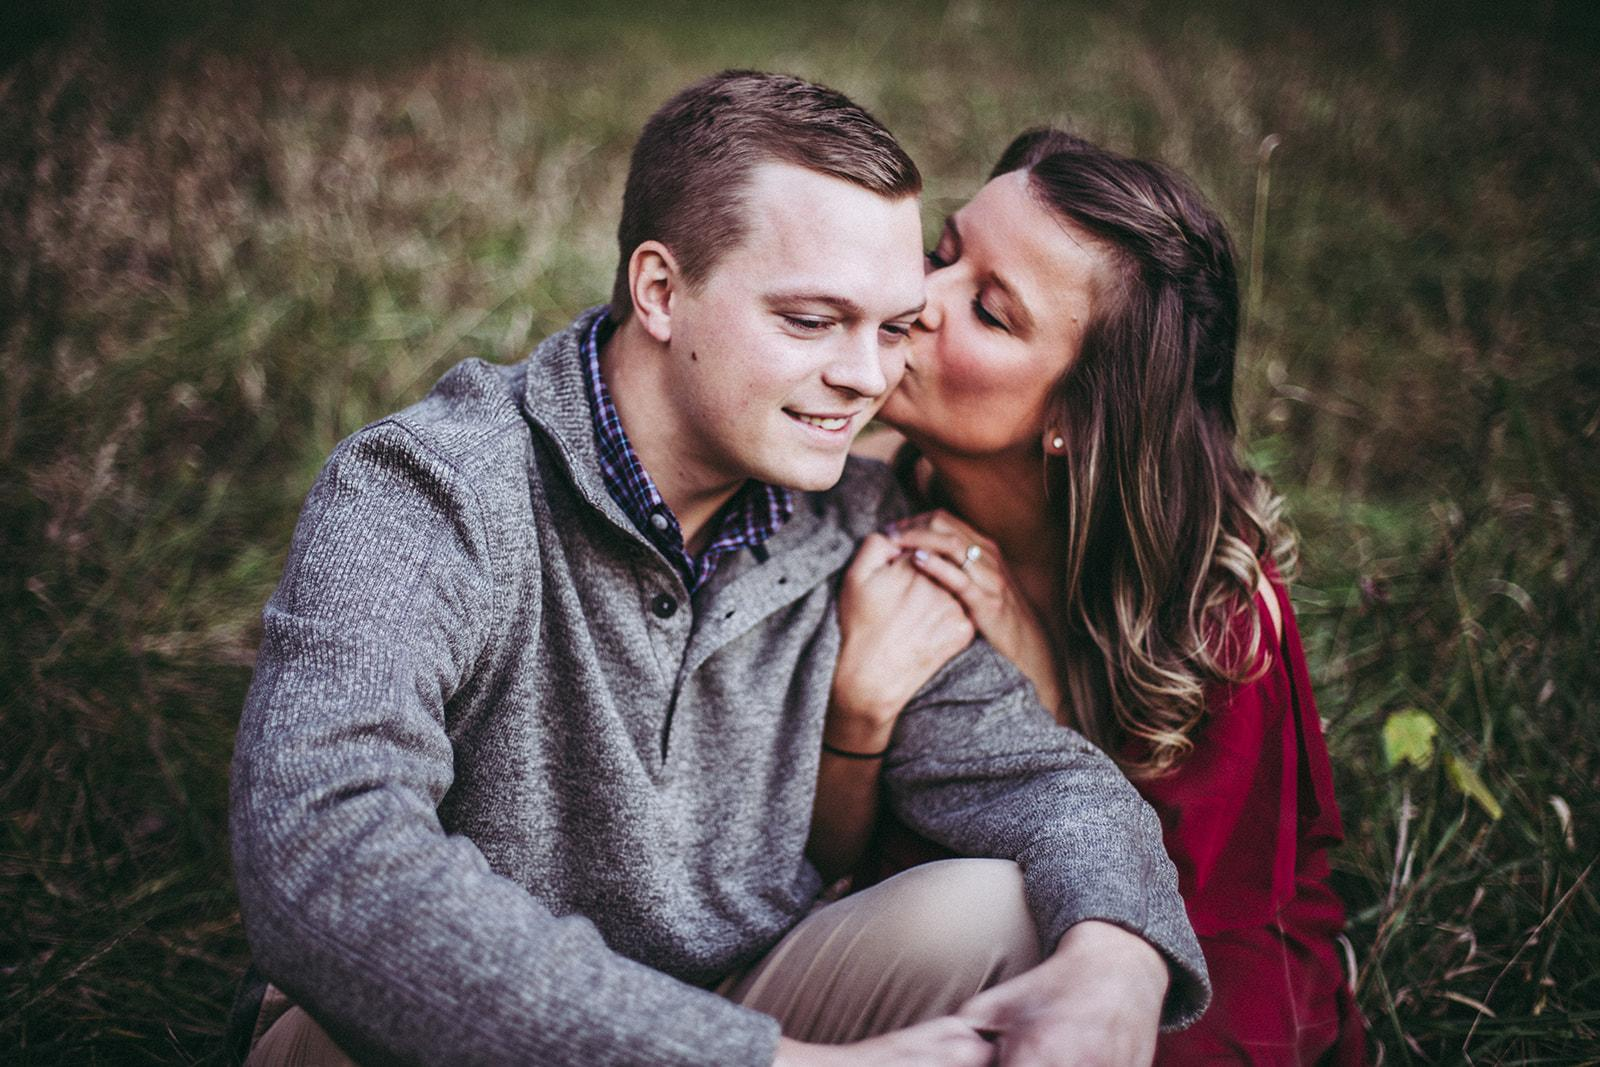 Kayla Johnson and Tyler Singleton